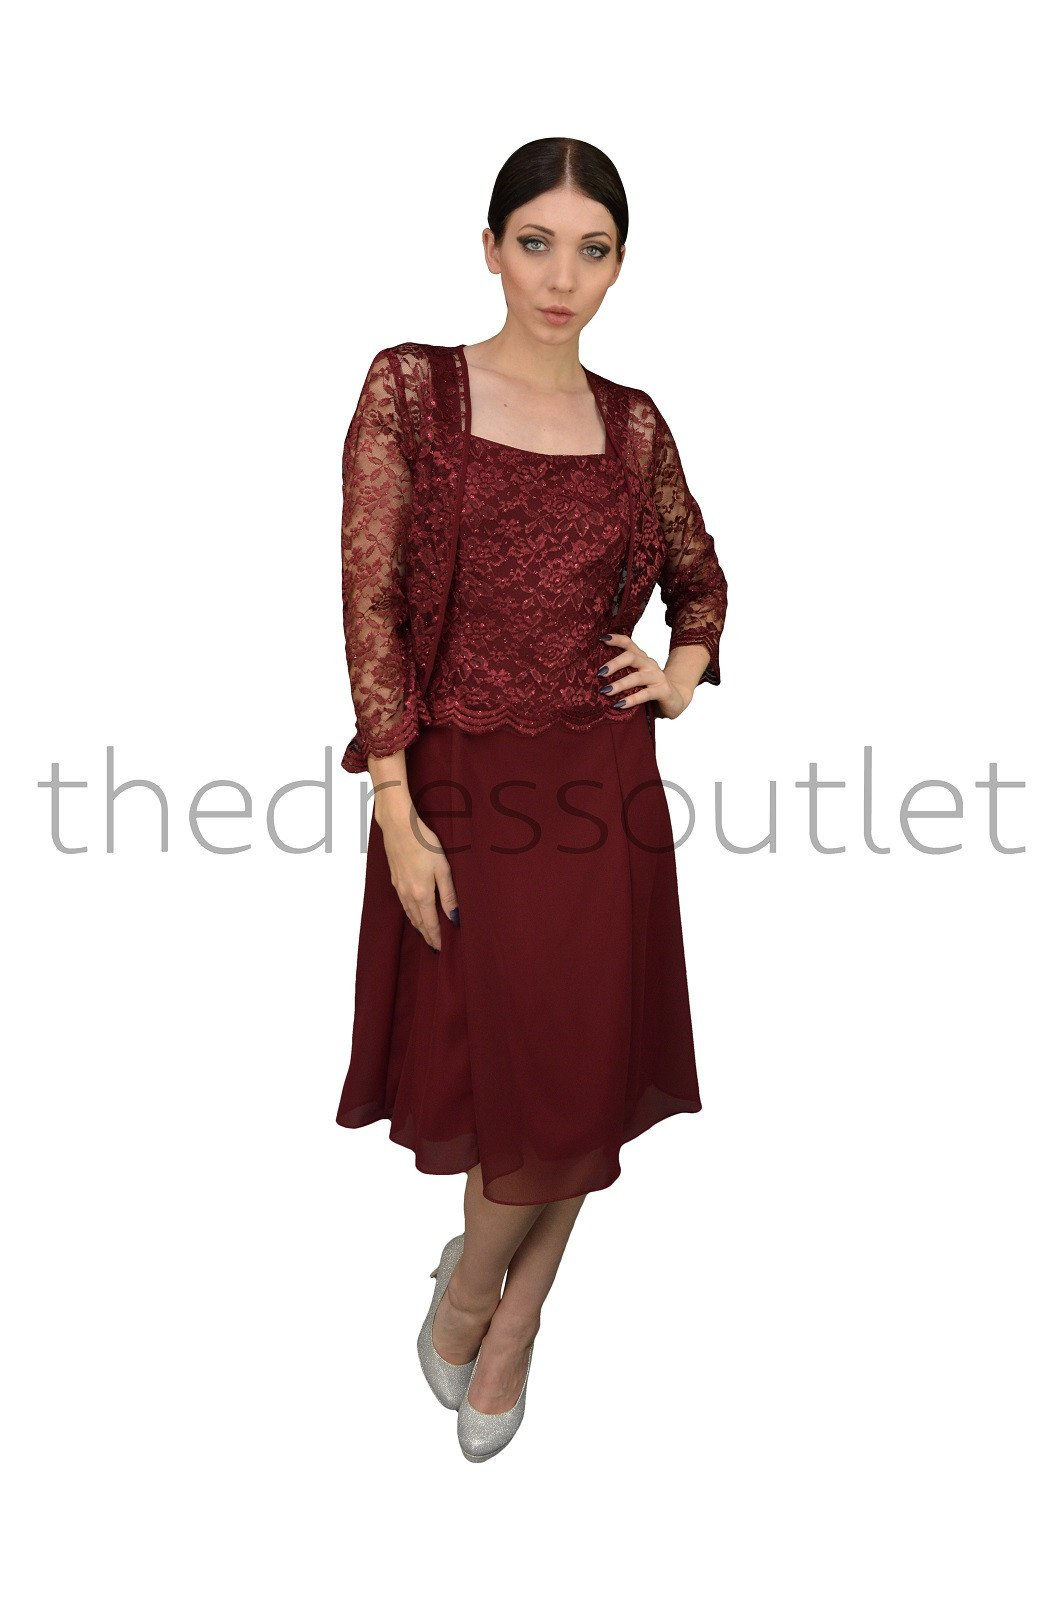 acf1723f96a The Dress Outlet - Short Mother Of The Bride Dress With Jacket 2019 -  Walmart.com